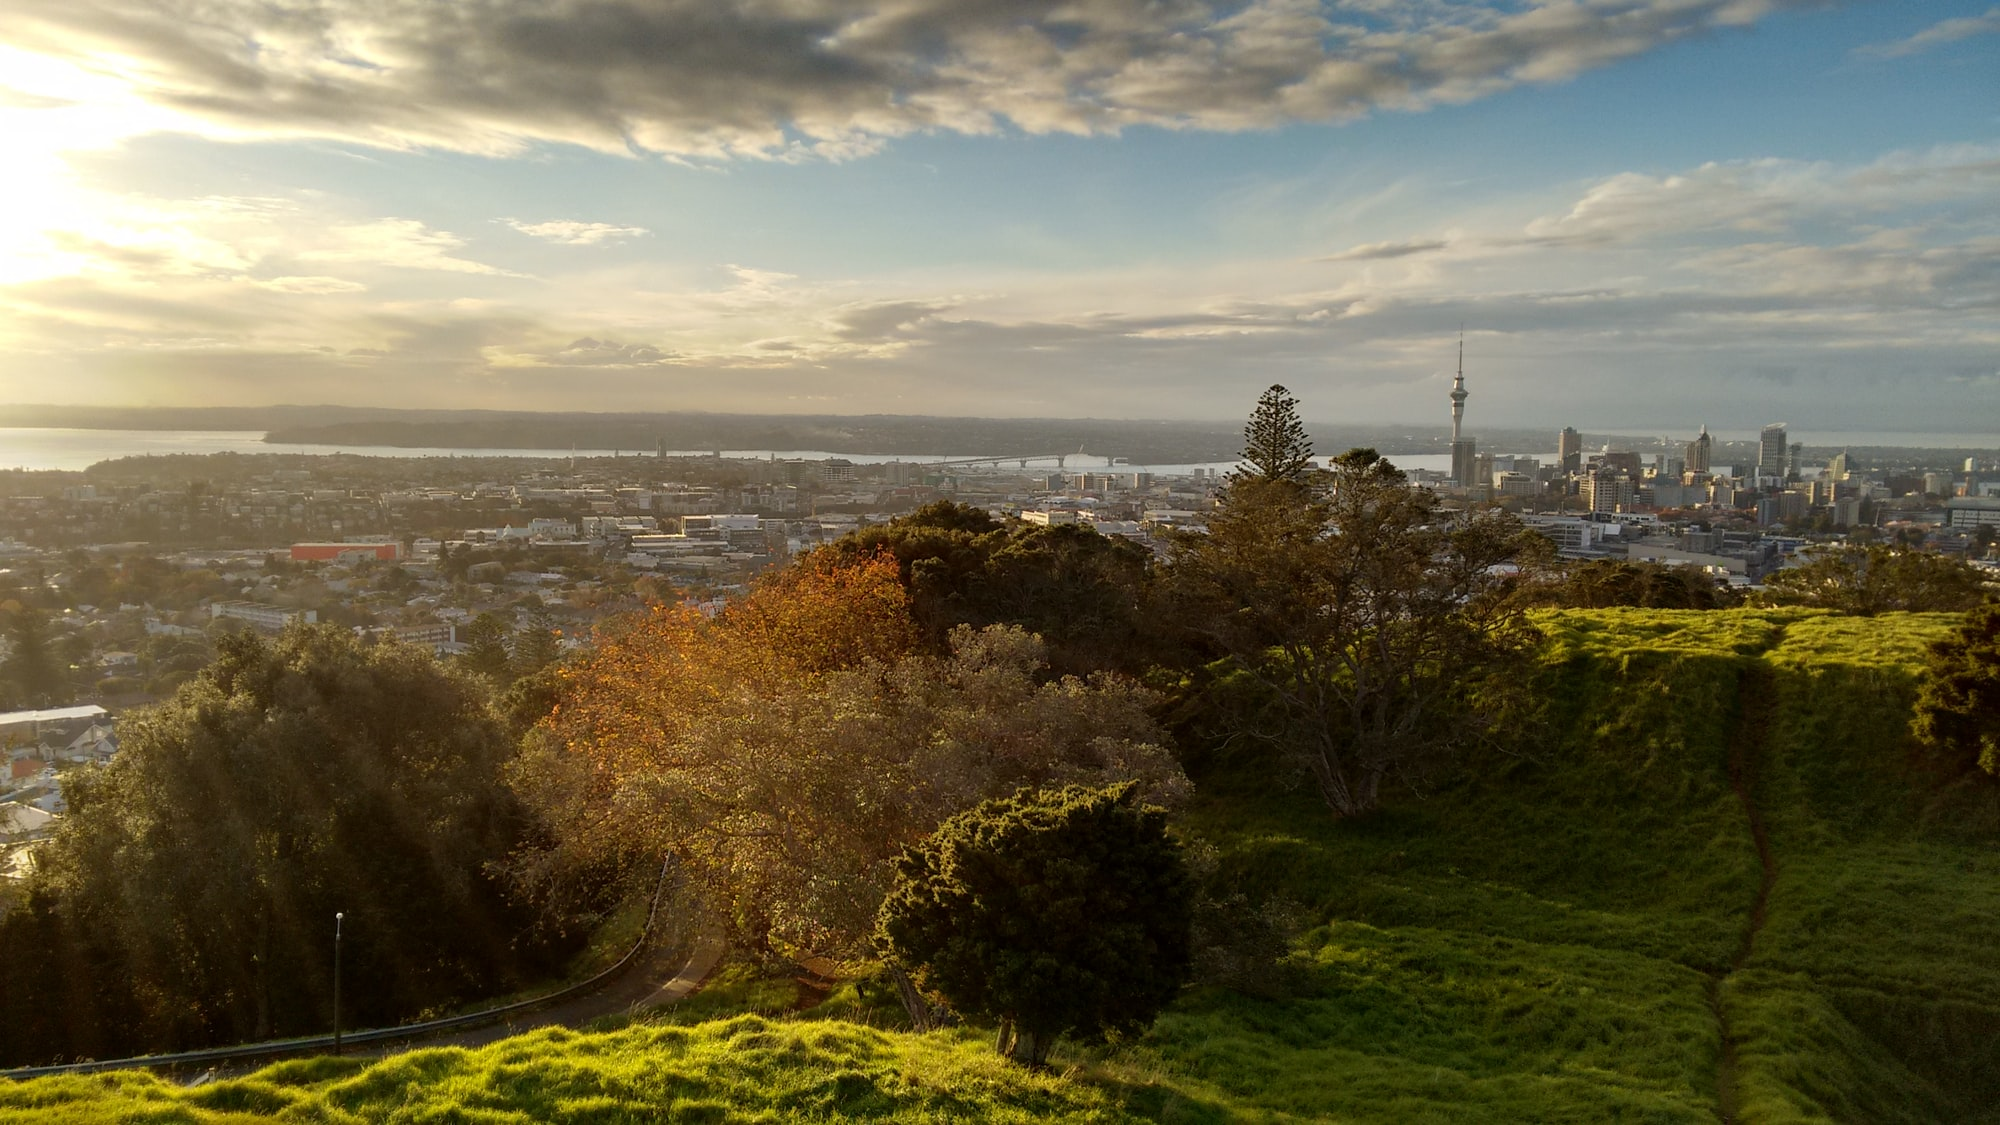 Auckland seen from a hill